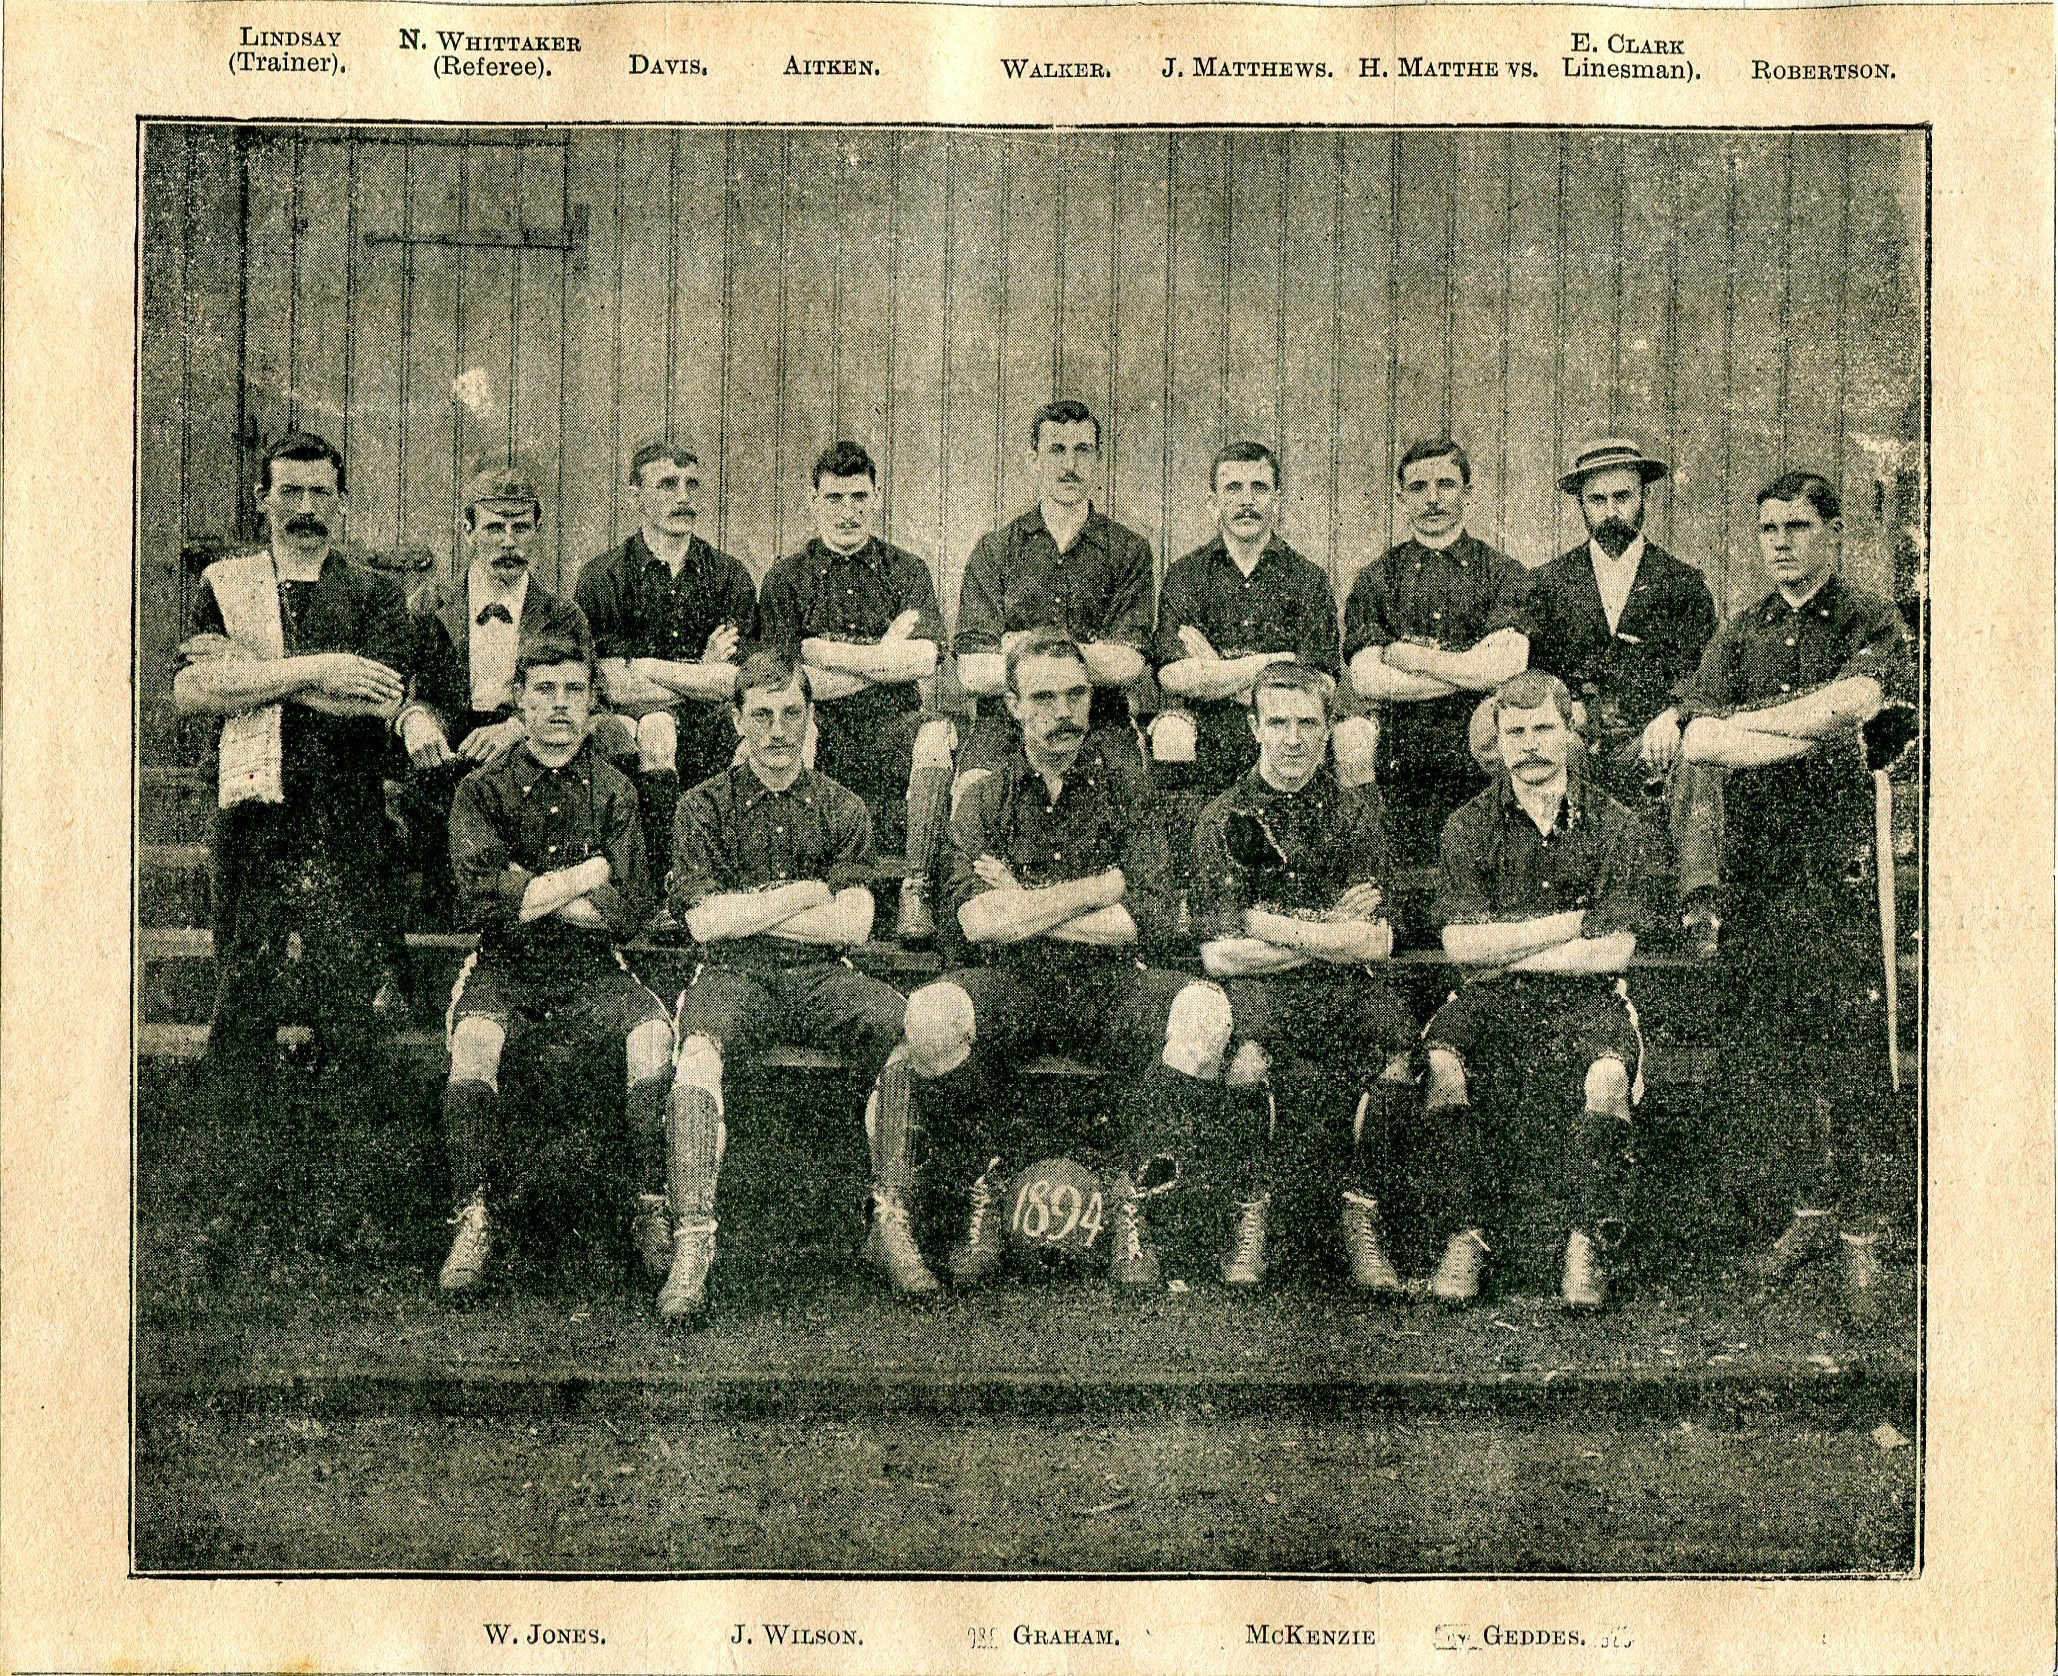 Millwall Athletic 1894